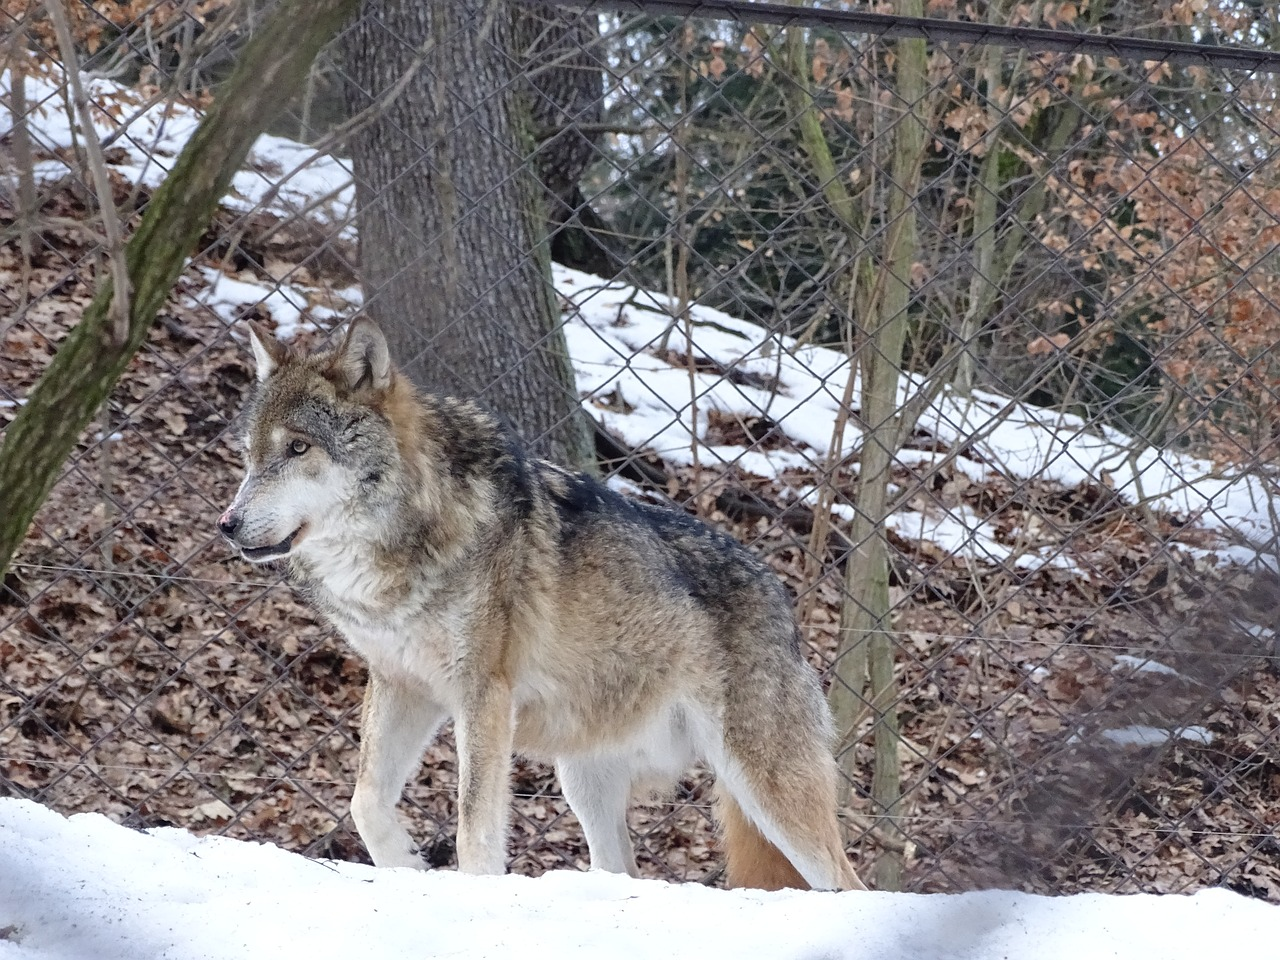 wolf,mammal,beast,zoo,deer,animal,predator,zoo enclosure,the zoological garden,animals,the she-wolf,dangerous,killer,canine,winter,hairy,gray,siberian,outdoors,hunter,free pictures, free photos, free images, royalty free, free illustrations, public domain